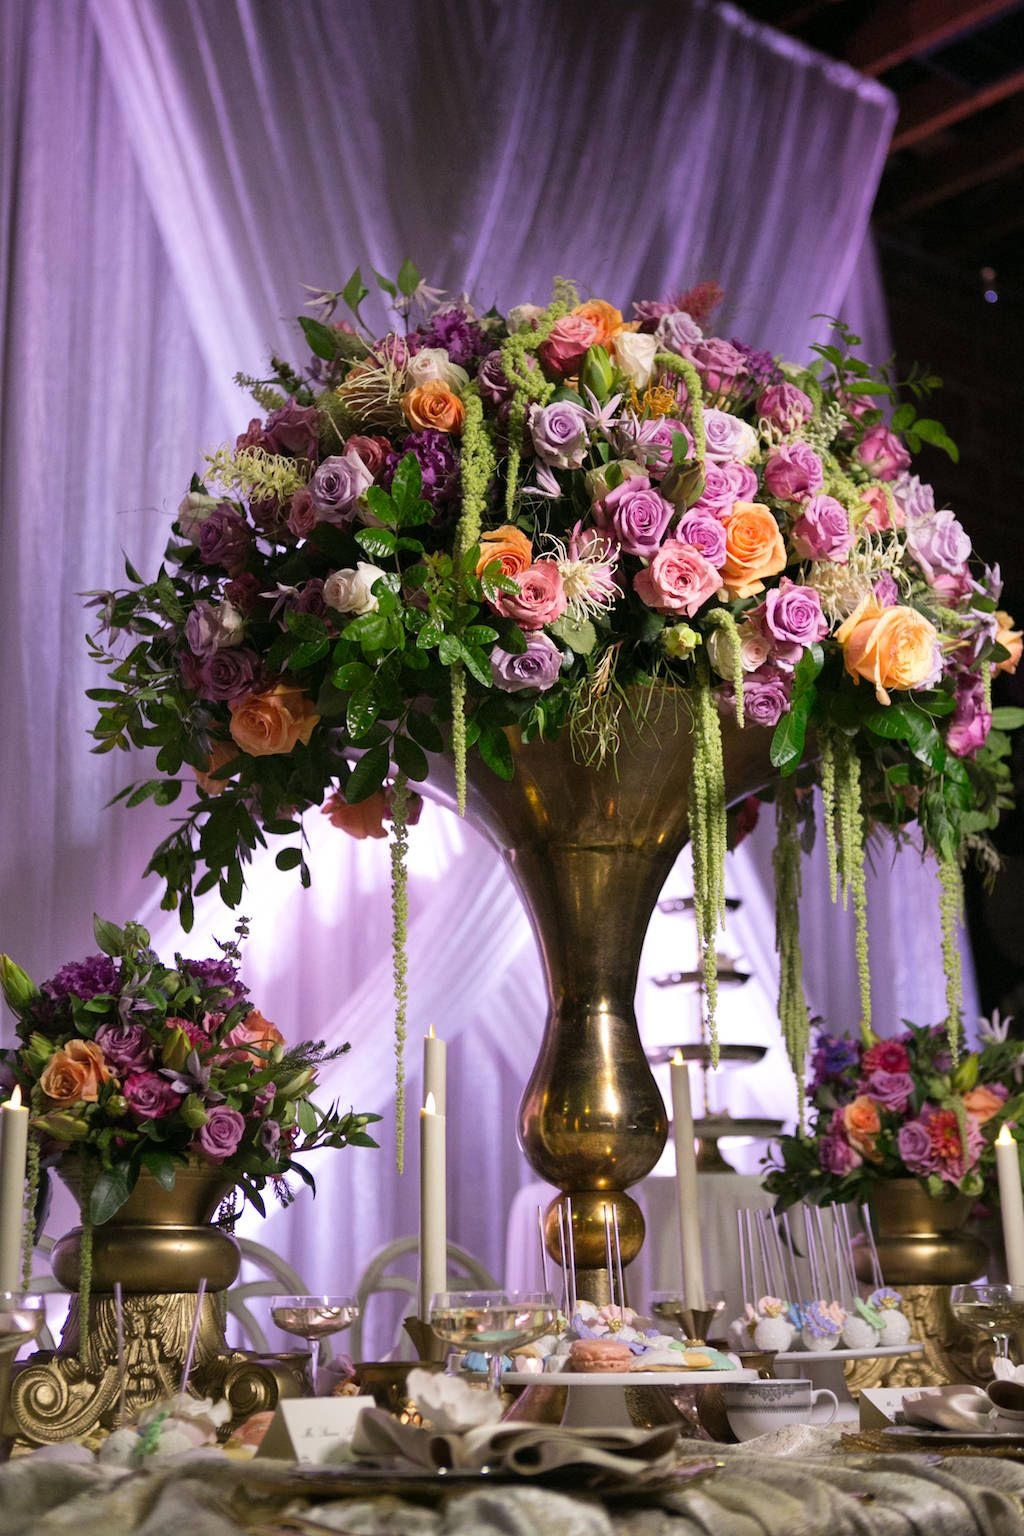 Tall French Inspired Wedding Reception Centerpiece with Pink, Orange, and Purple Roses with Tropical Greenery in Gold Vase | Luxurious St Pete Wedding at Downtown Historic Venue NOVA 535